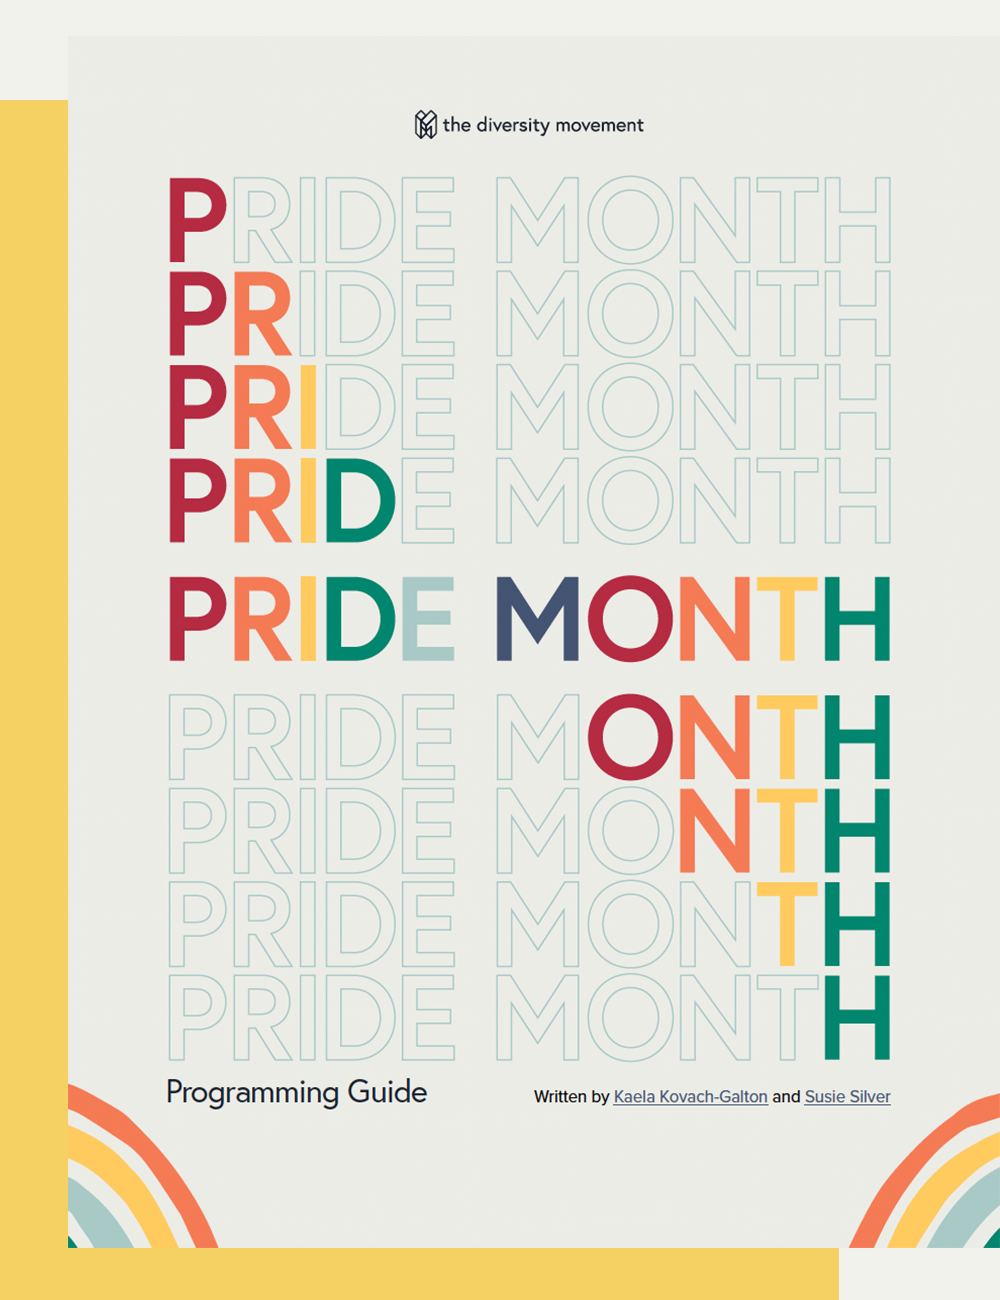 Cover of pride month guide with rainbow letters